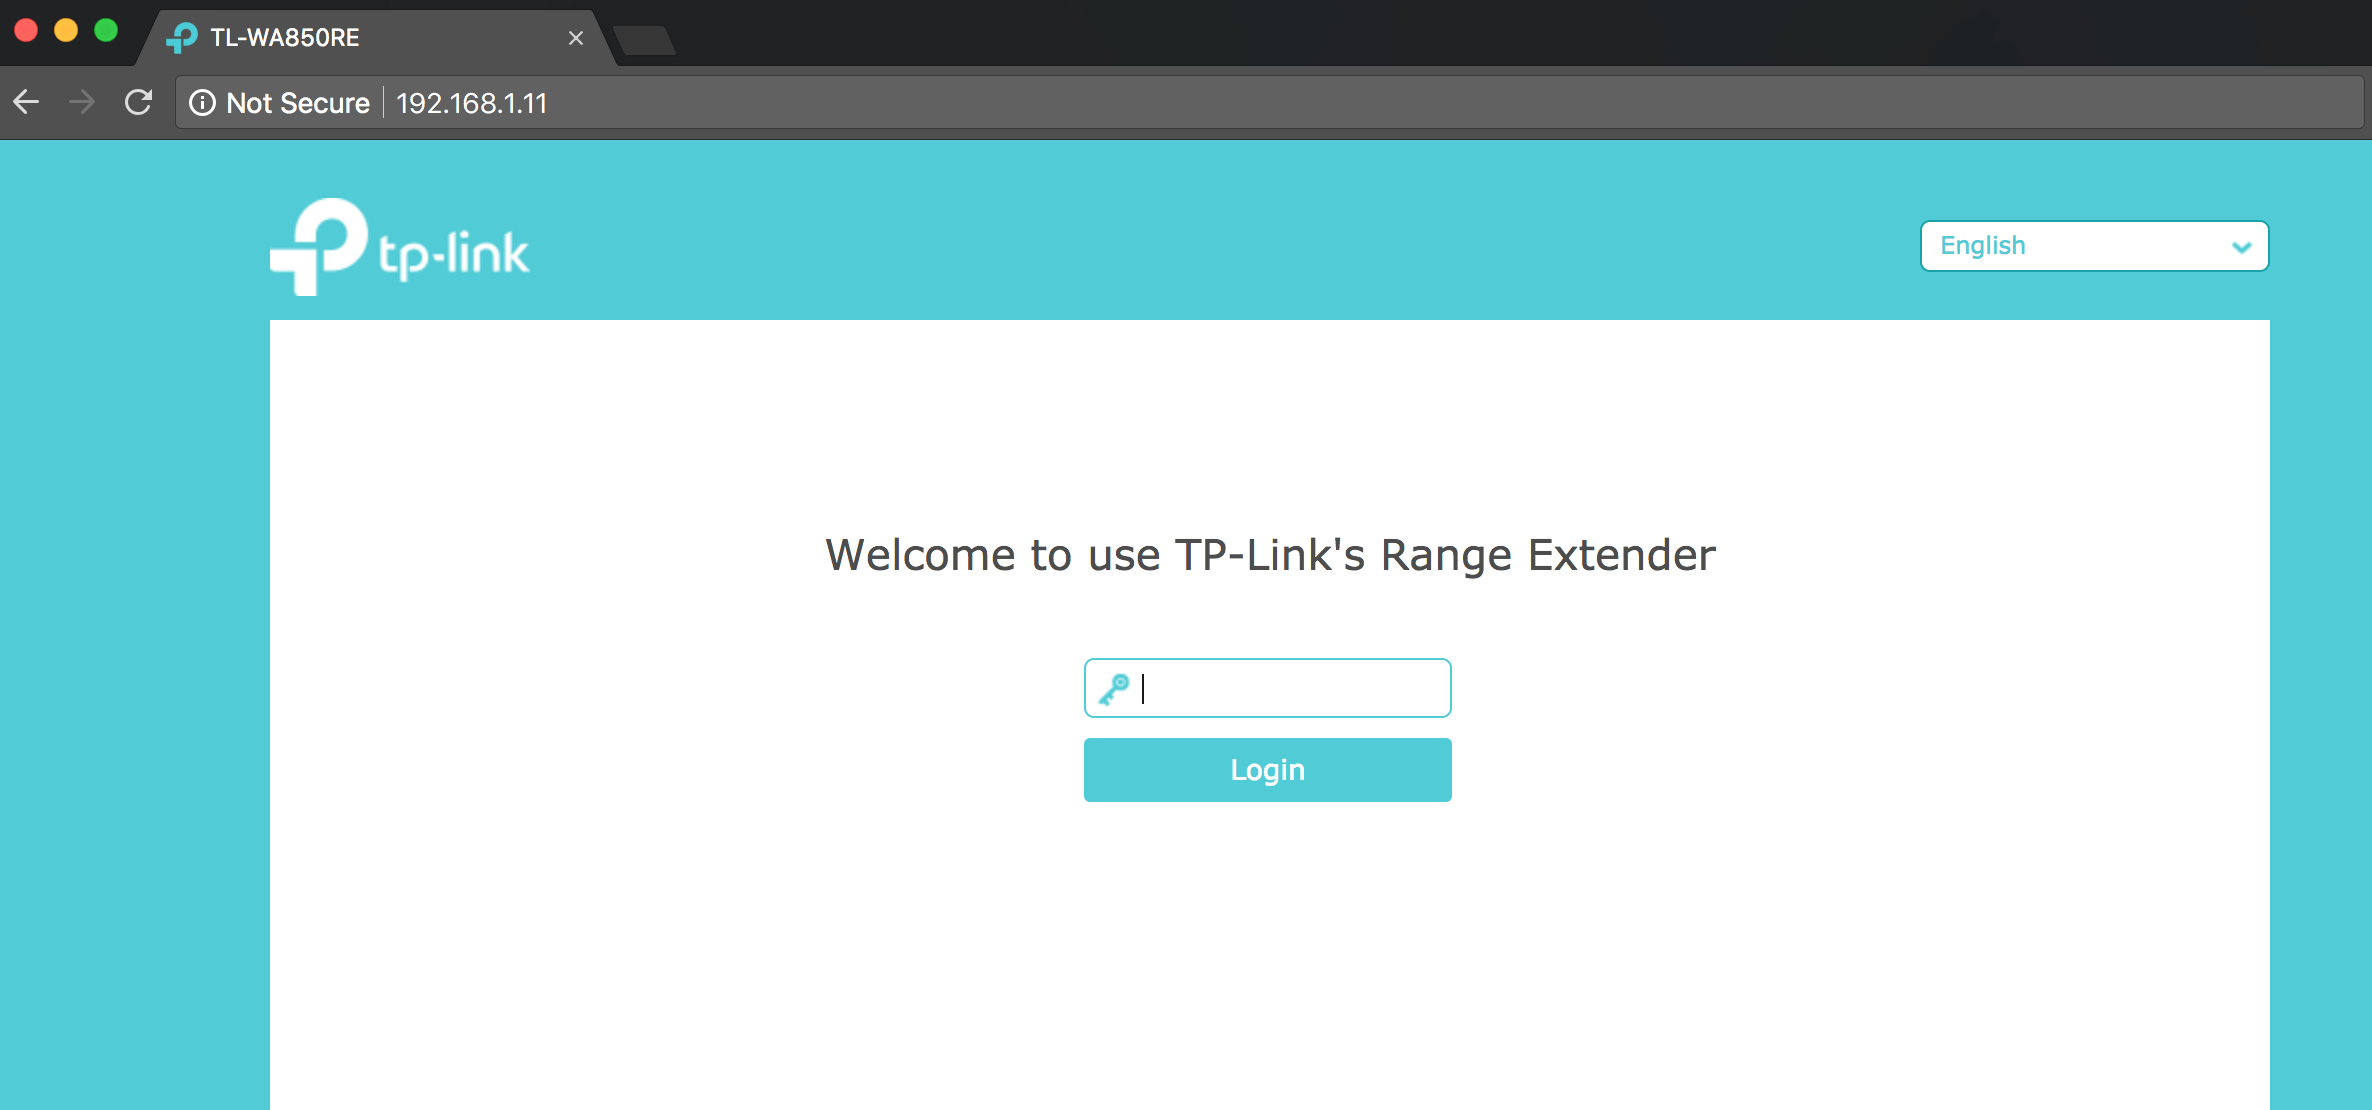 The (in)security of the TP-Link Technologies TL-WA850RE Wi-Fi Range